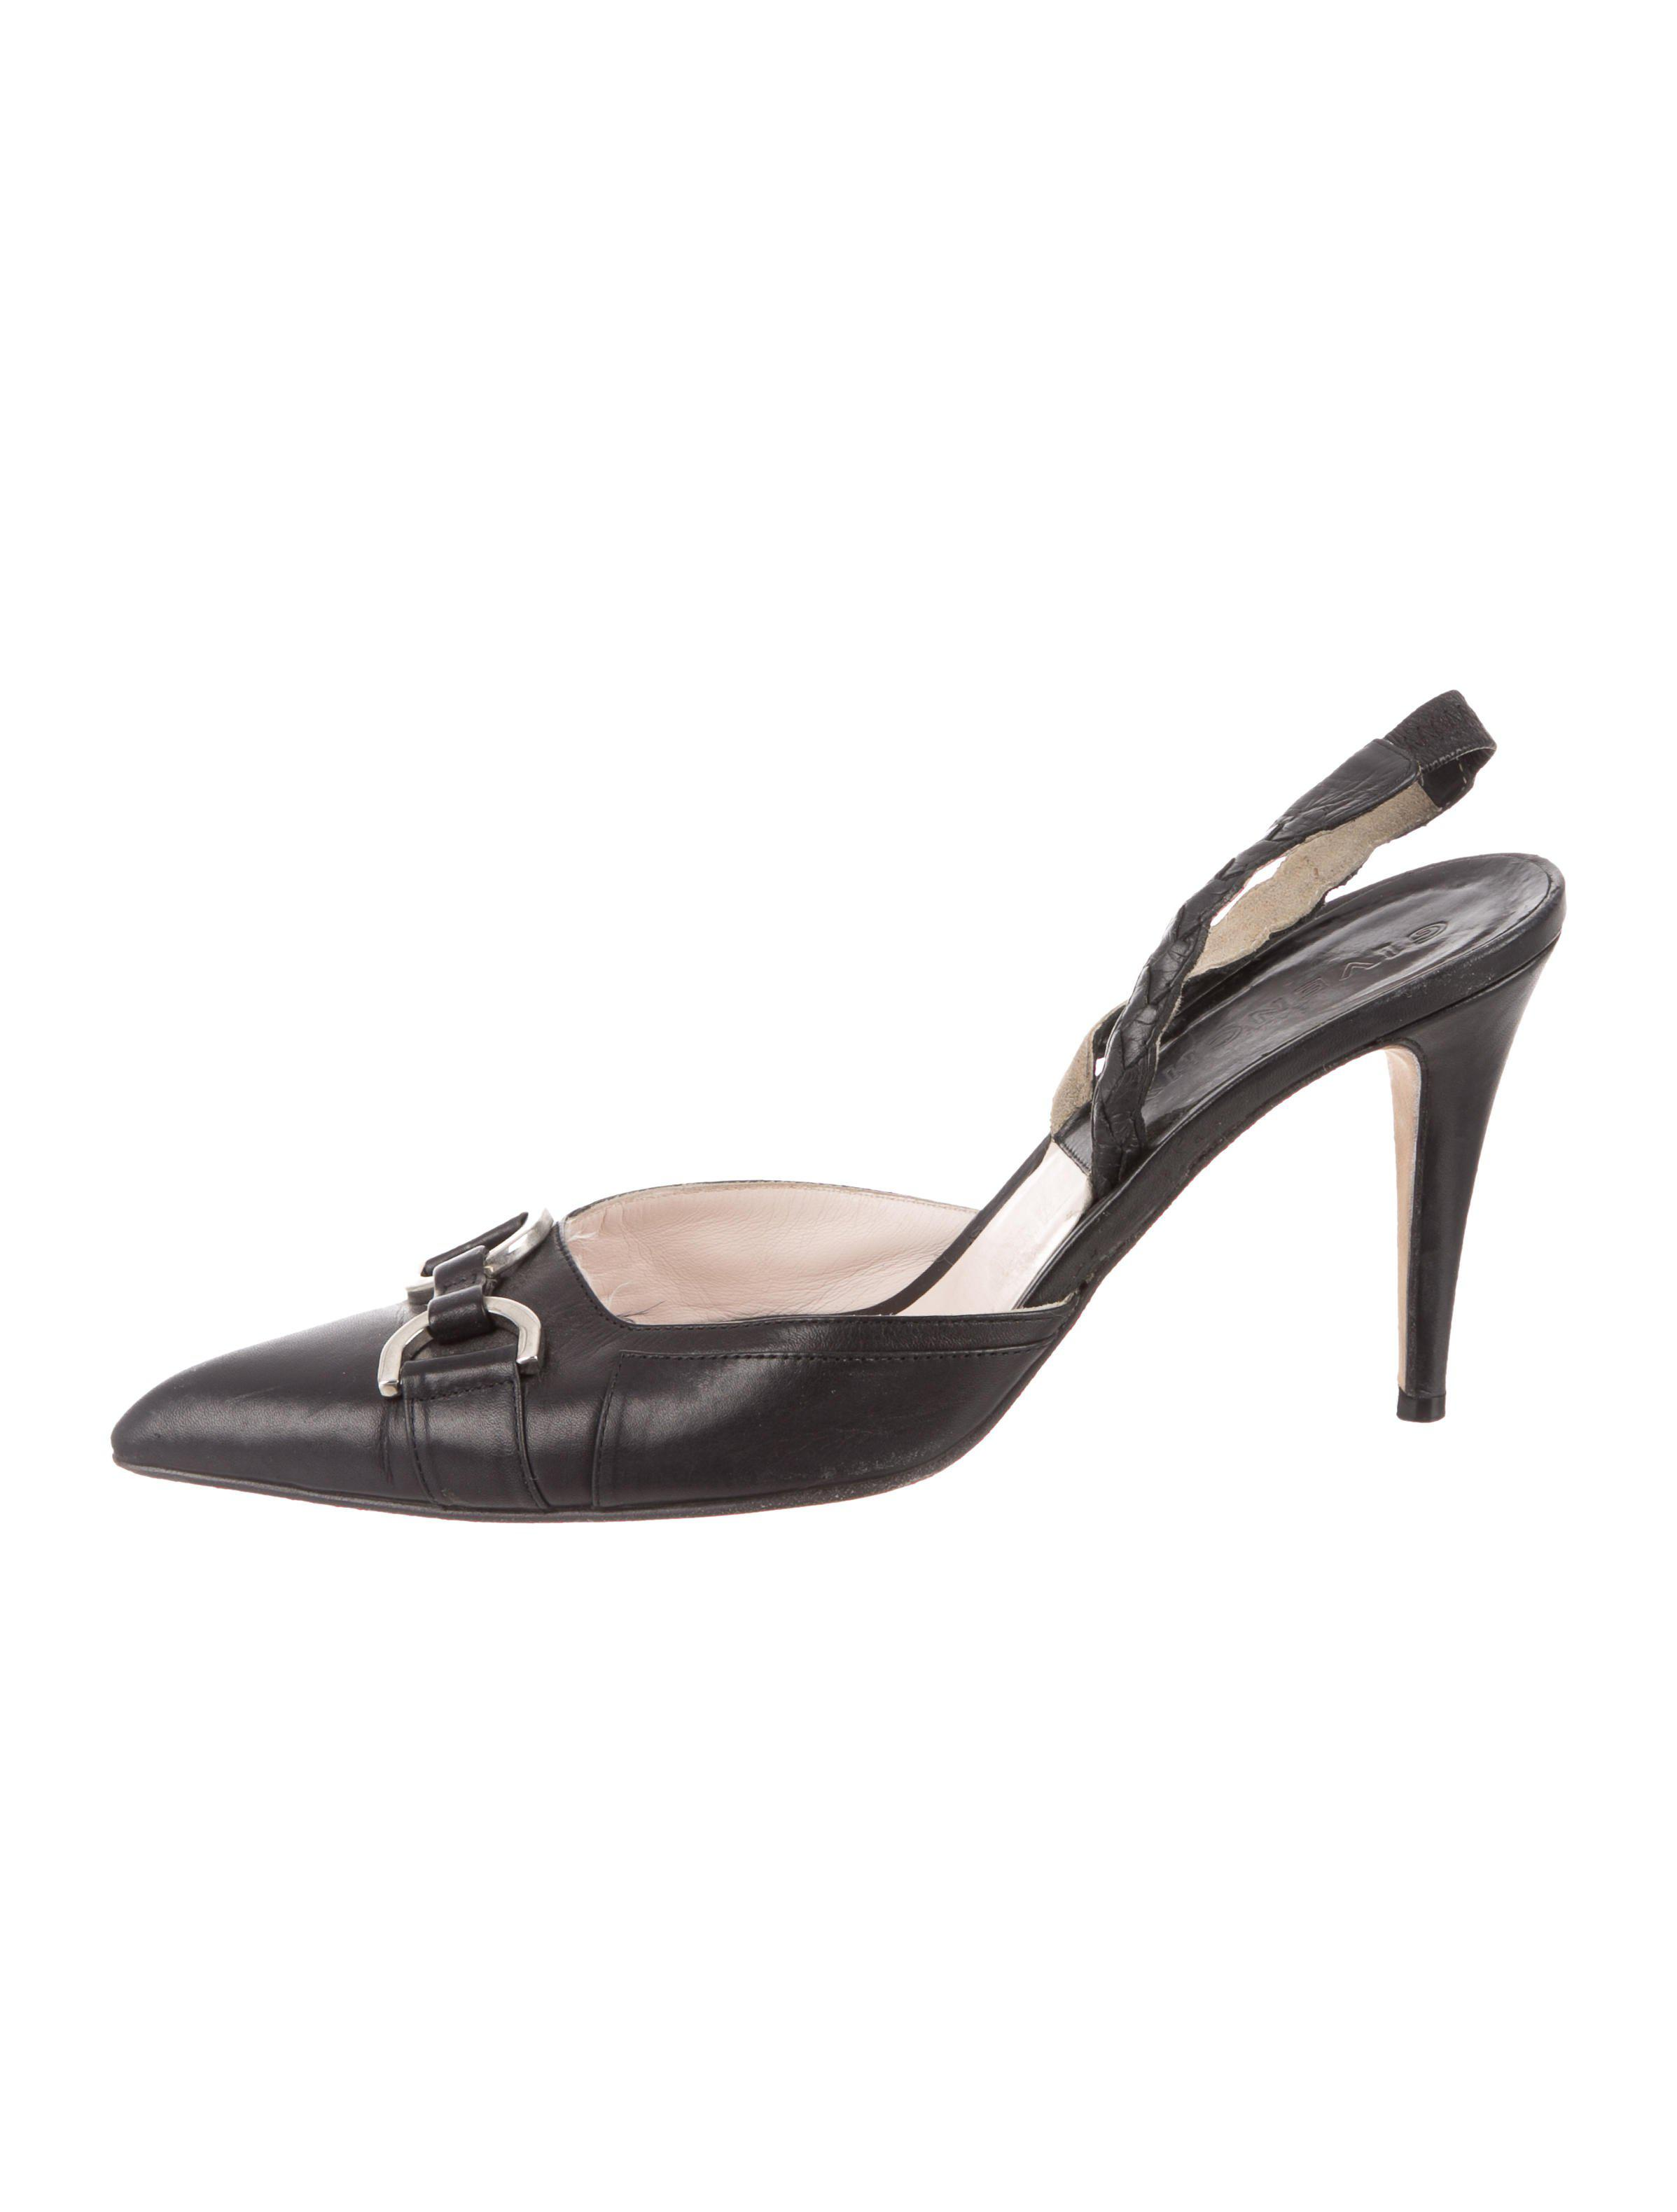 pointed toe pumps - Black Givenchy ylN5bx8qky